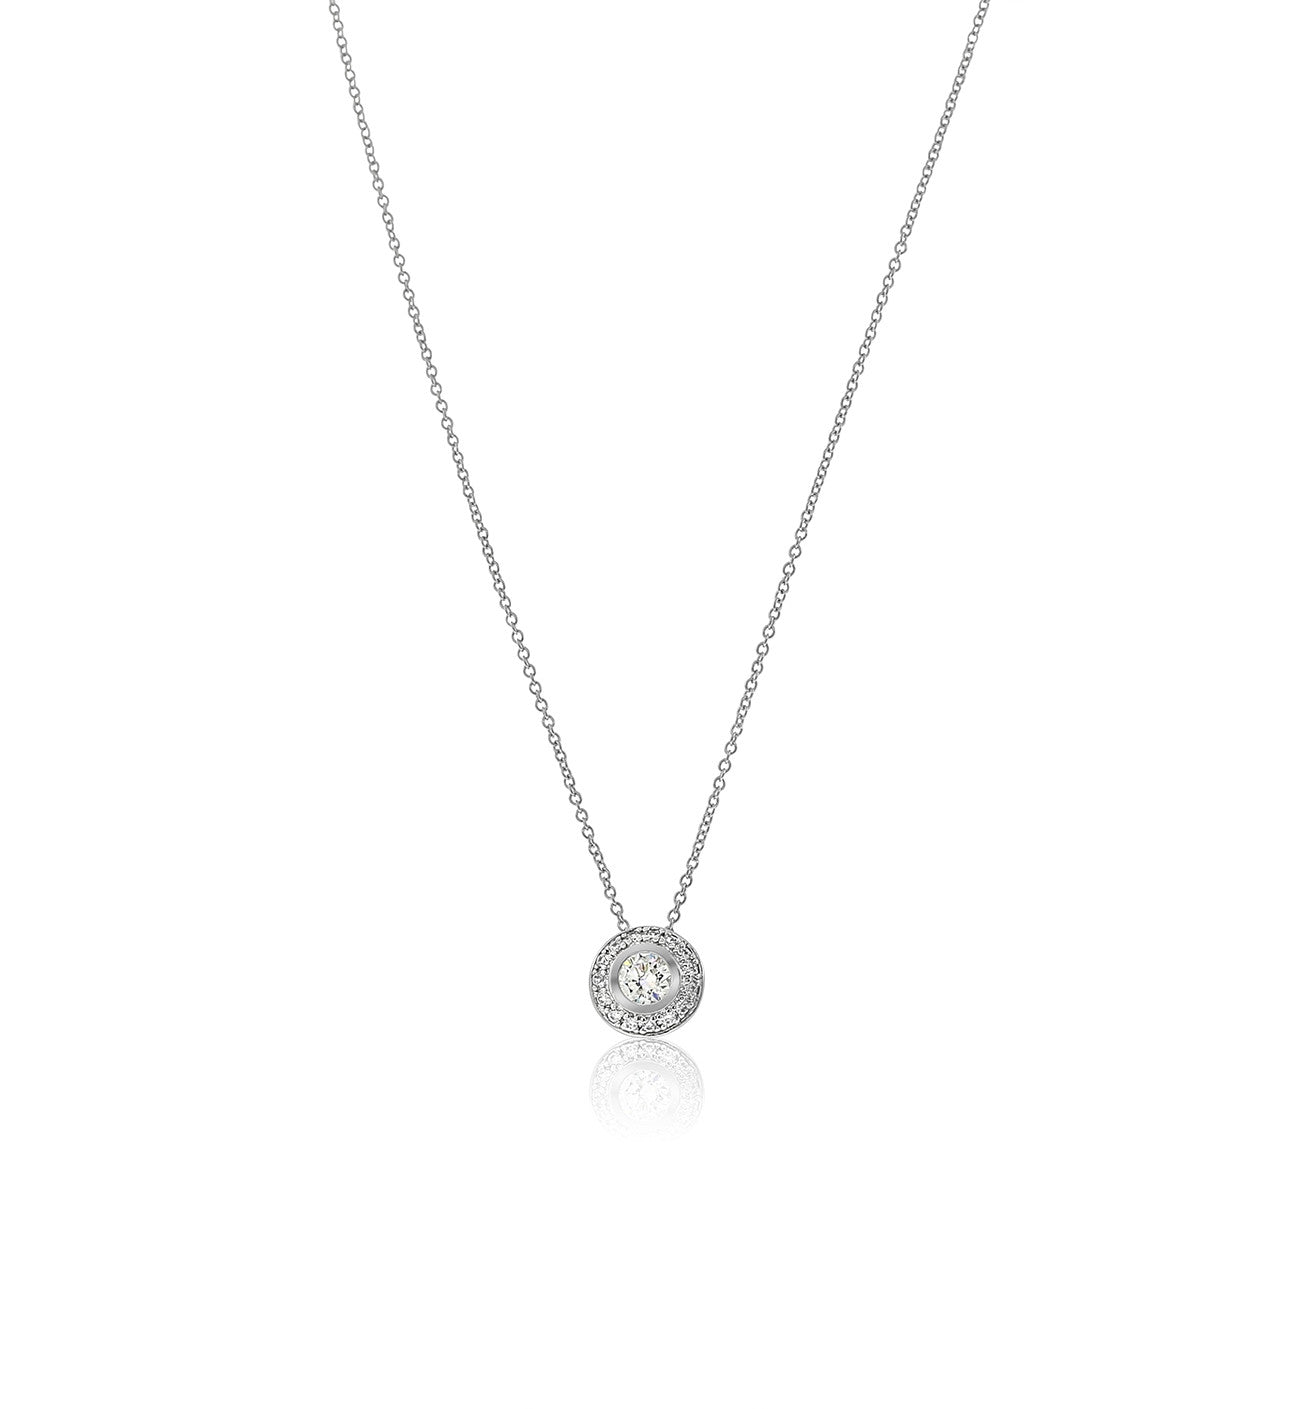 set ct necklace solitaire pendant diamond products ways dsc bezel afaf